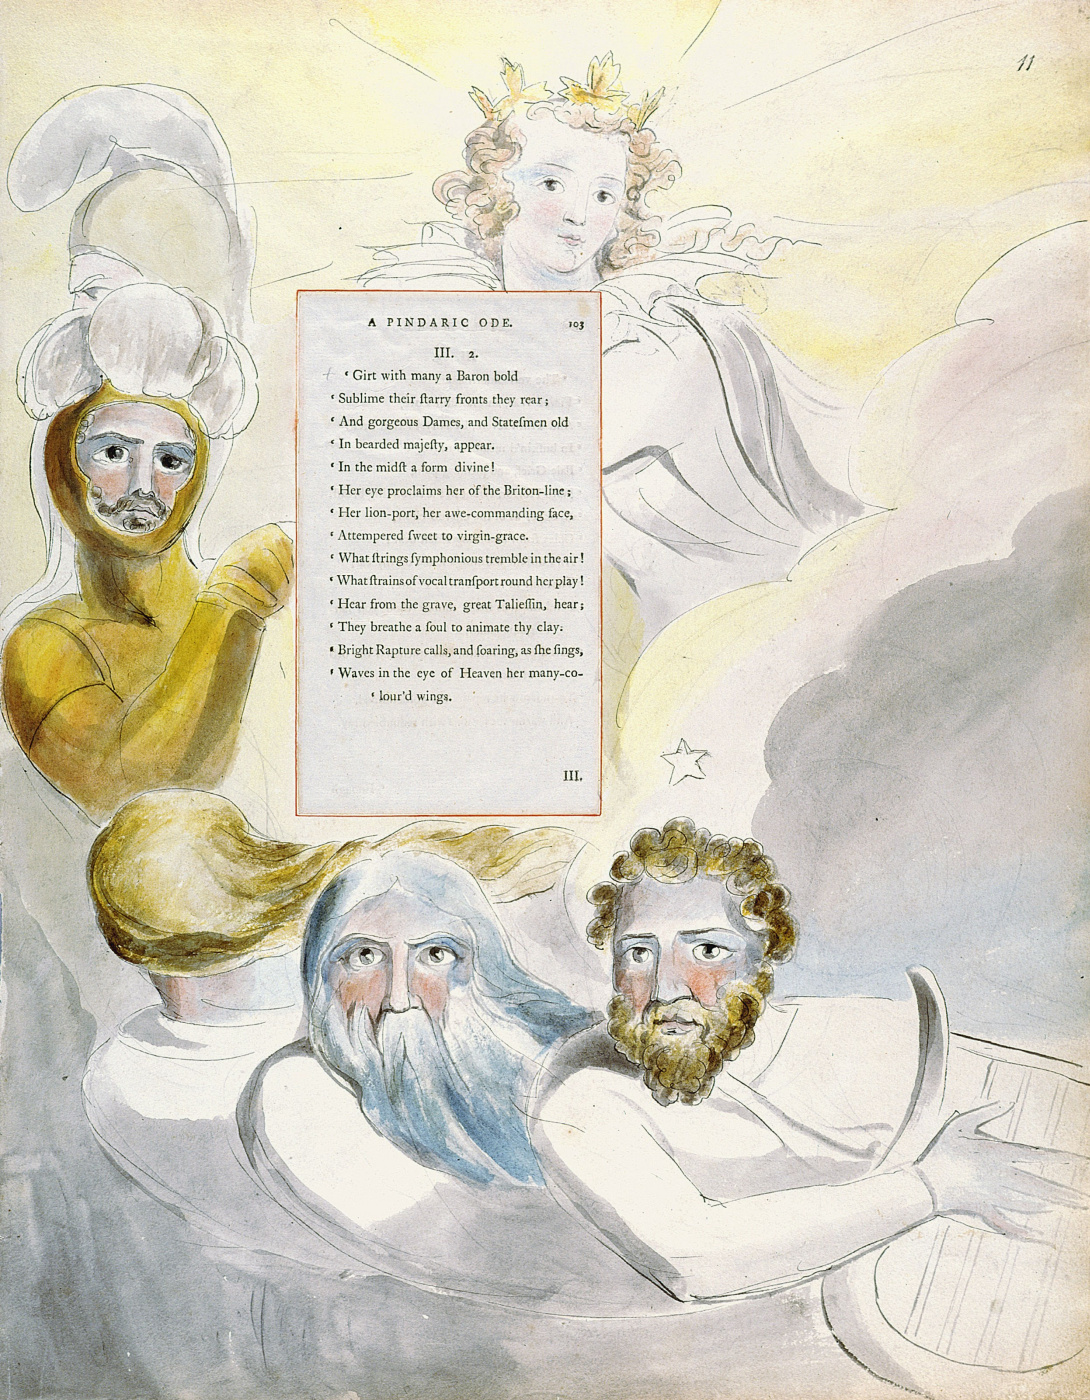 William Blake. Illustrations to the poems. Bard. Pintoresca ode. Sheet 11